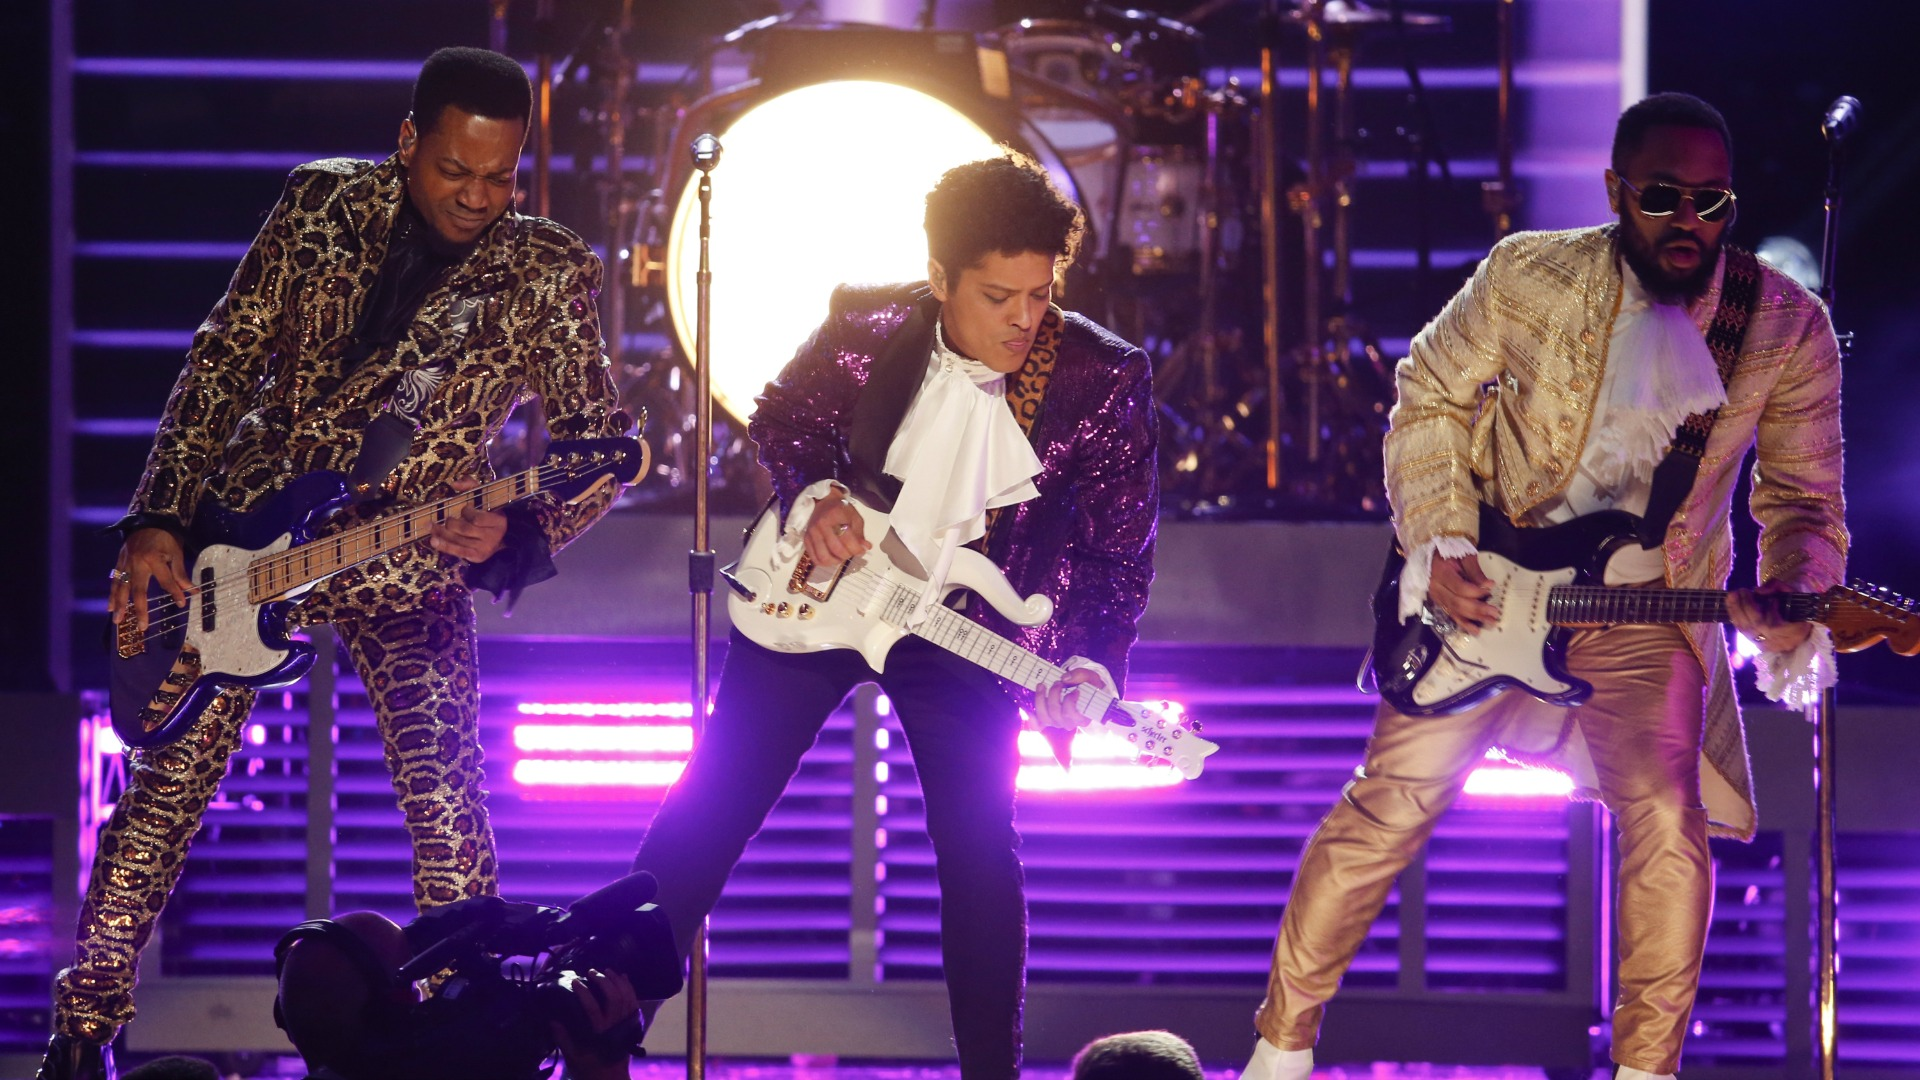 Bruno Mars donned a purple suit during his performance of